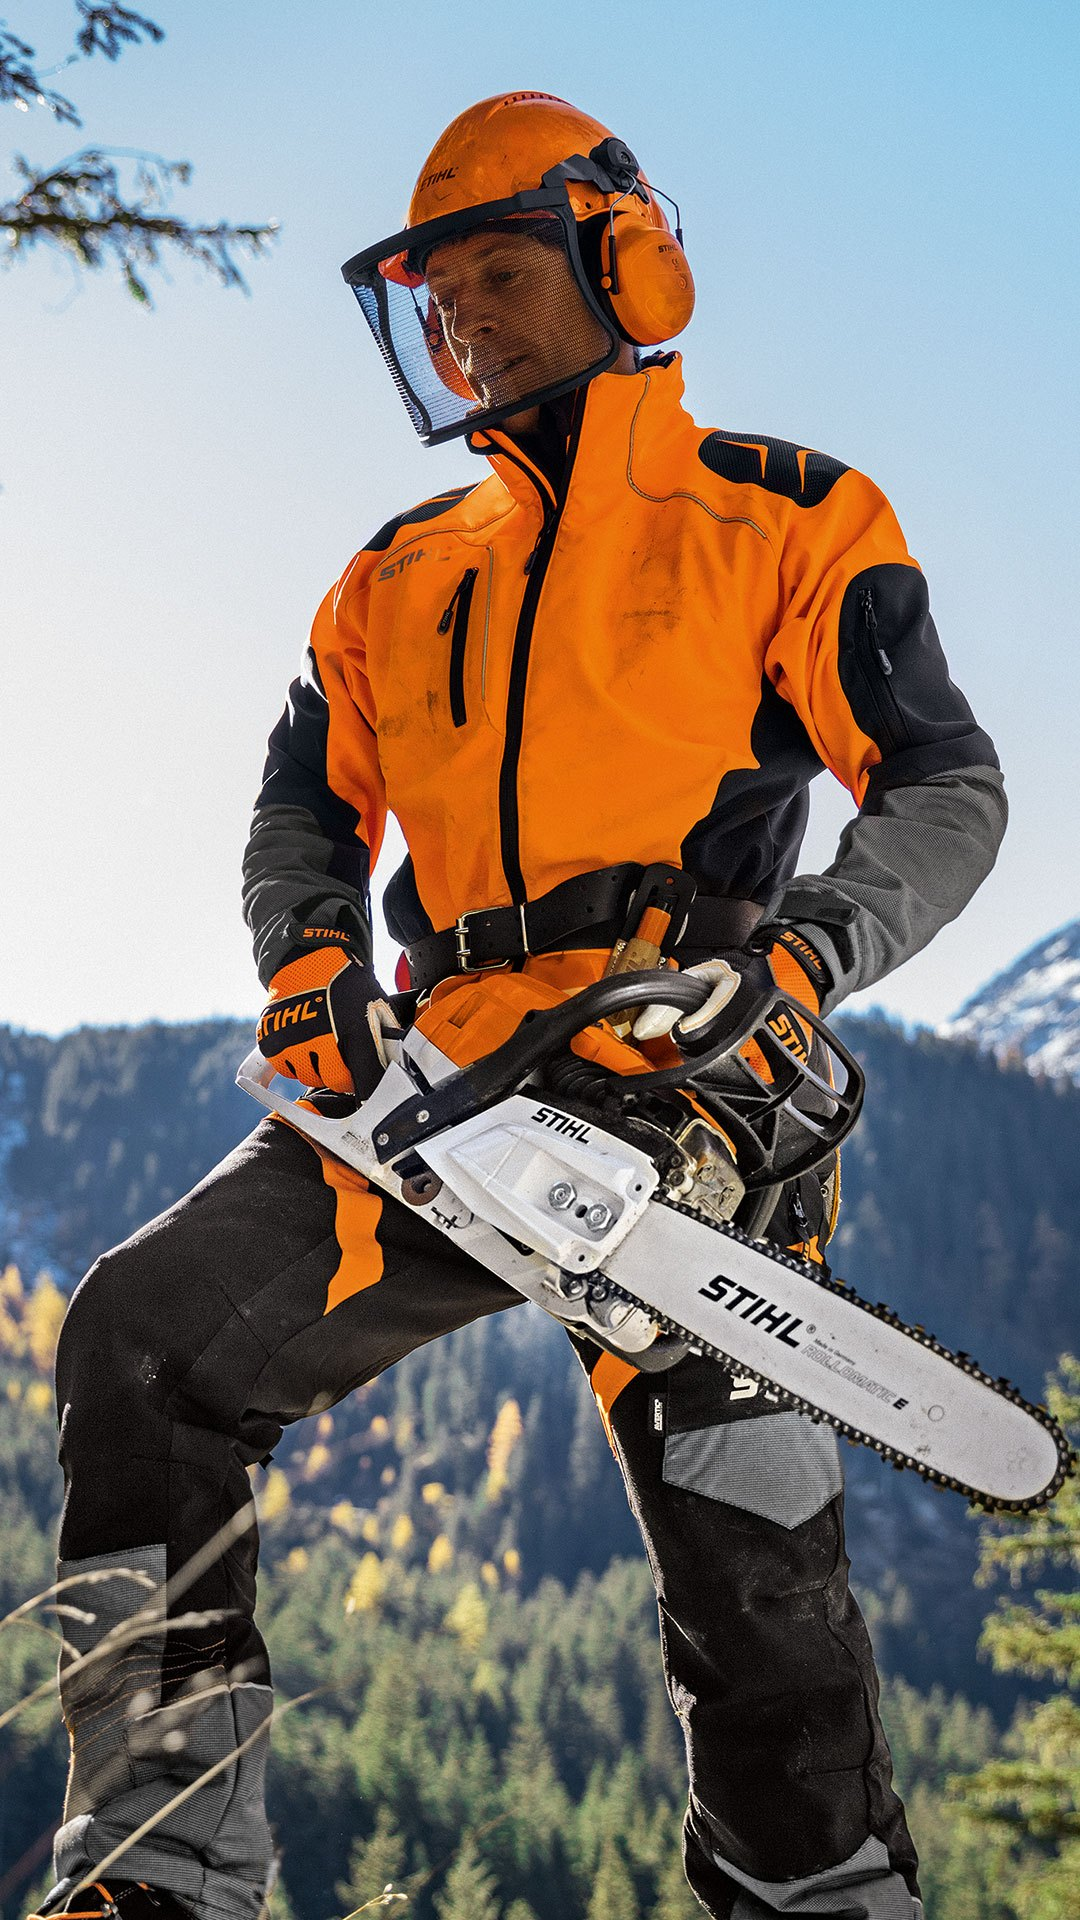 Stihl Ms   Stihl Hd Wallpapers Backgr 1072455   PNG Images   PNGio 1080x1920